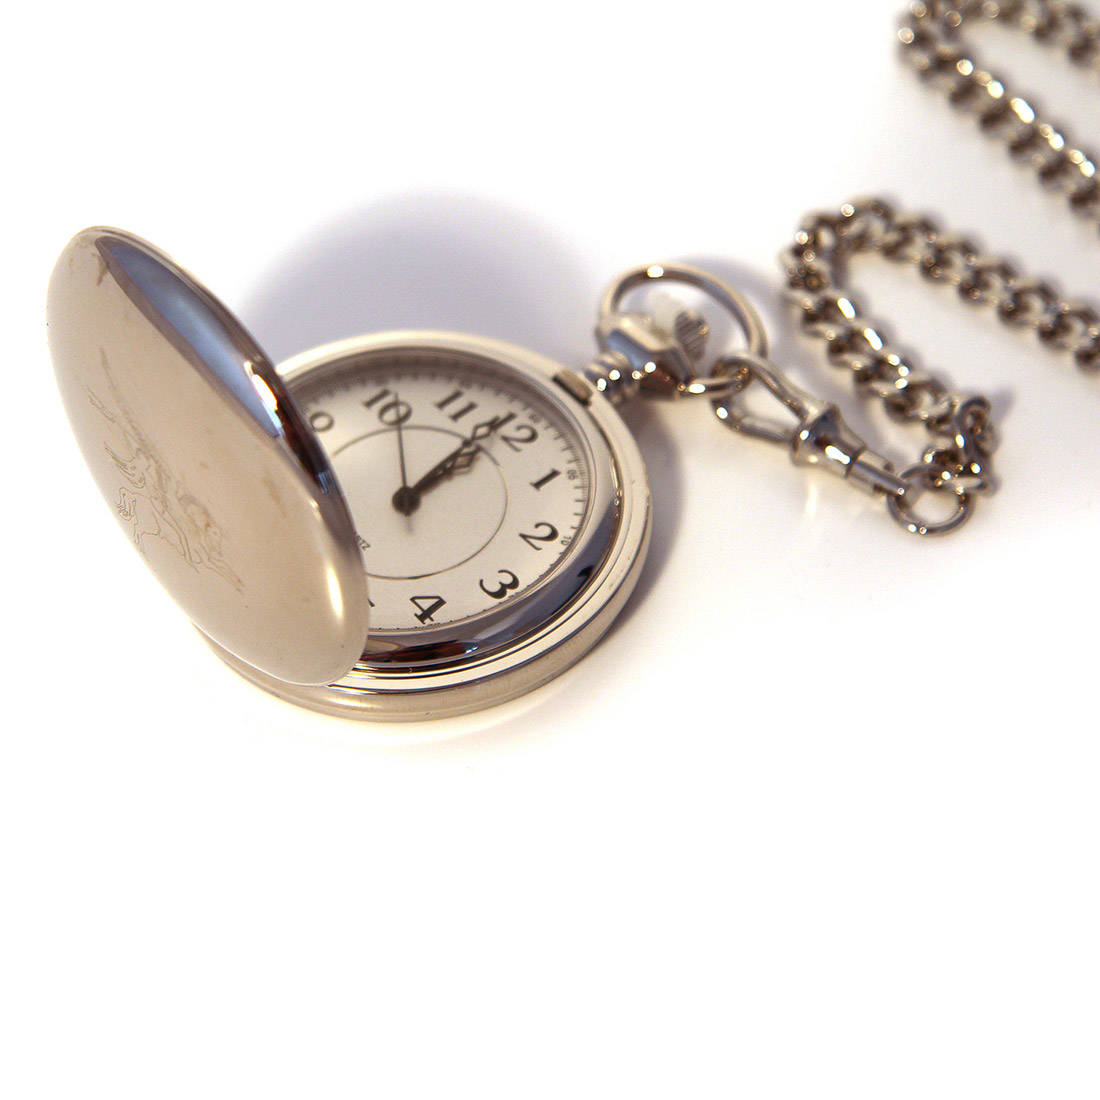 Chrome Finish Engraved Pocket Watch - Para or Pegasus